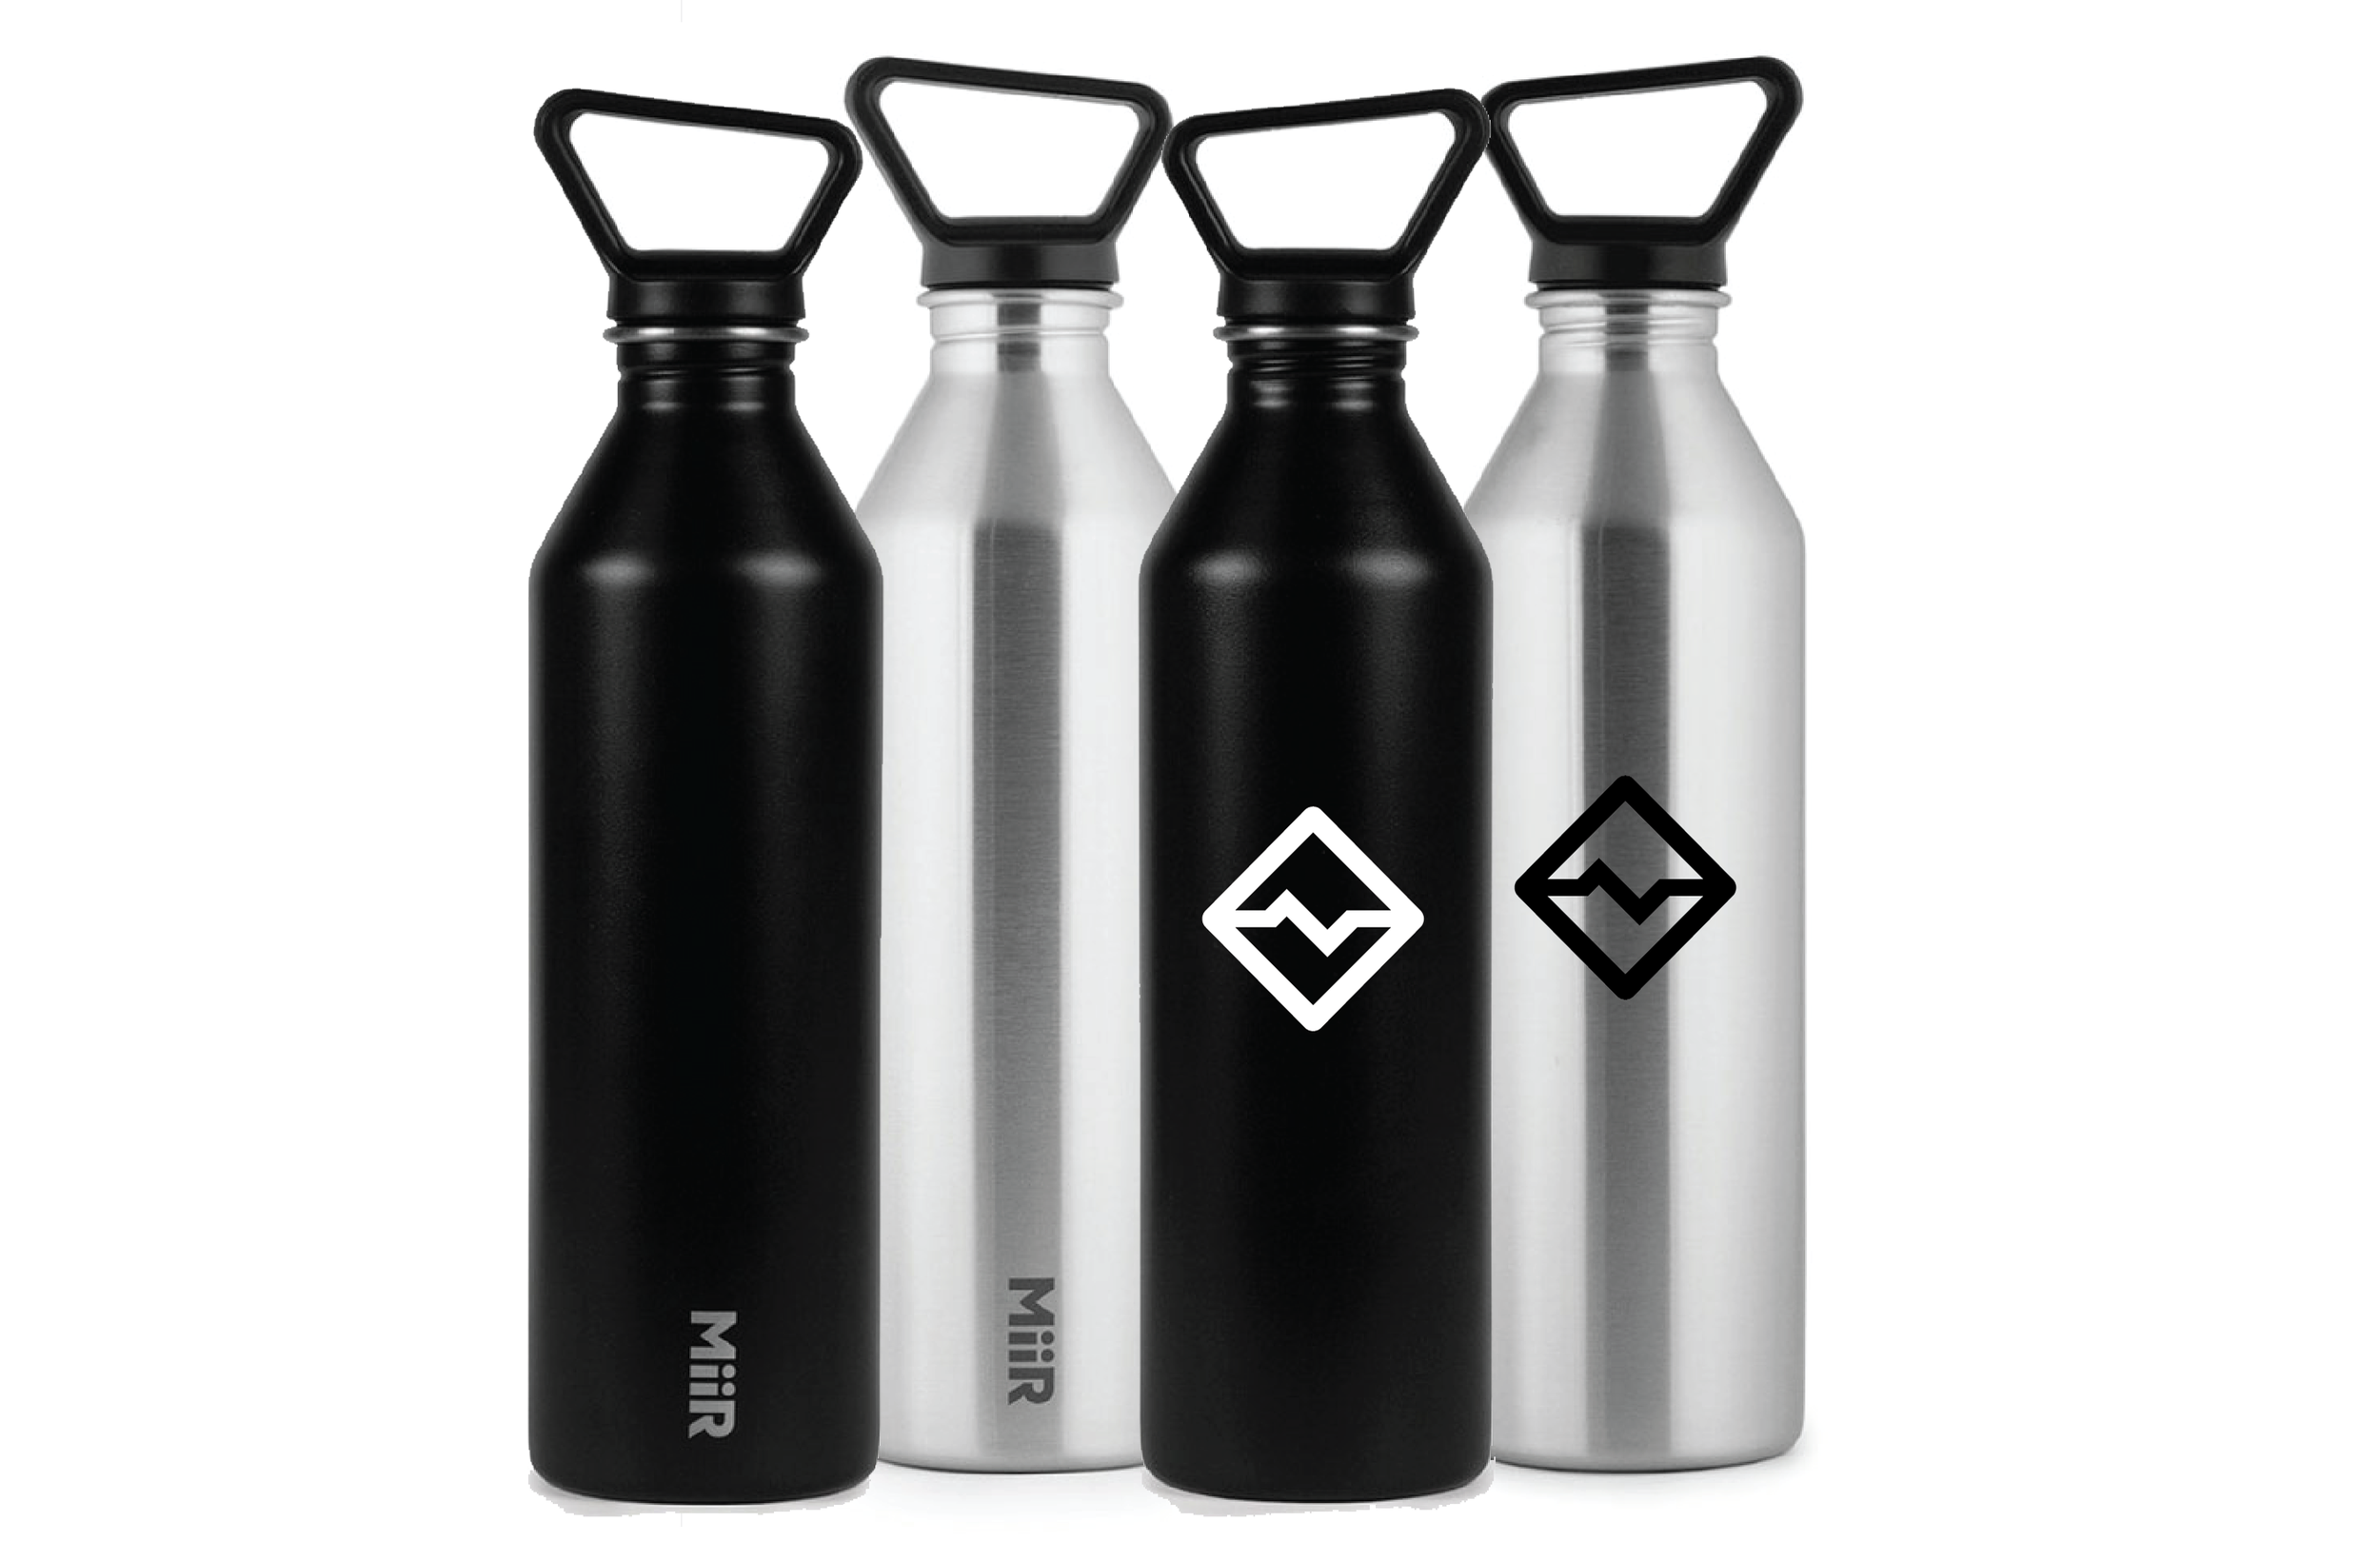 MIIR x CLIFFS WATER BOTTLES - $21.95